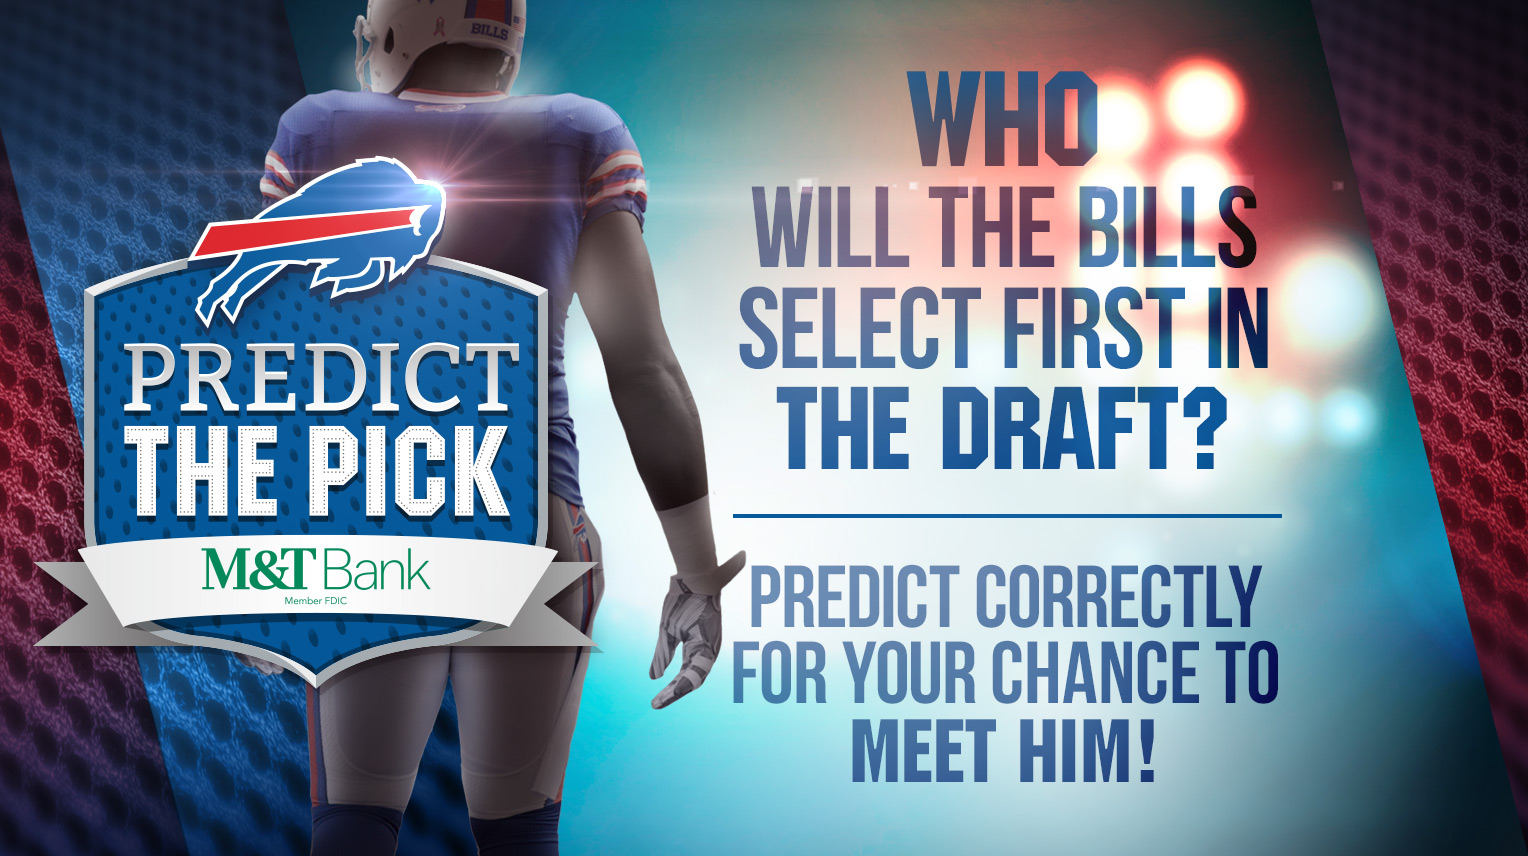 4c1b9570d0a1a Bills fans the 2017 NFL Draft is less than a month away. You know what that  means  It s time to pick who you think the Bills will take first!